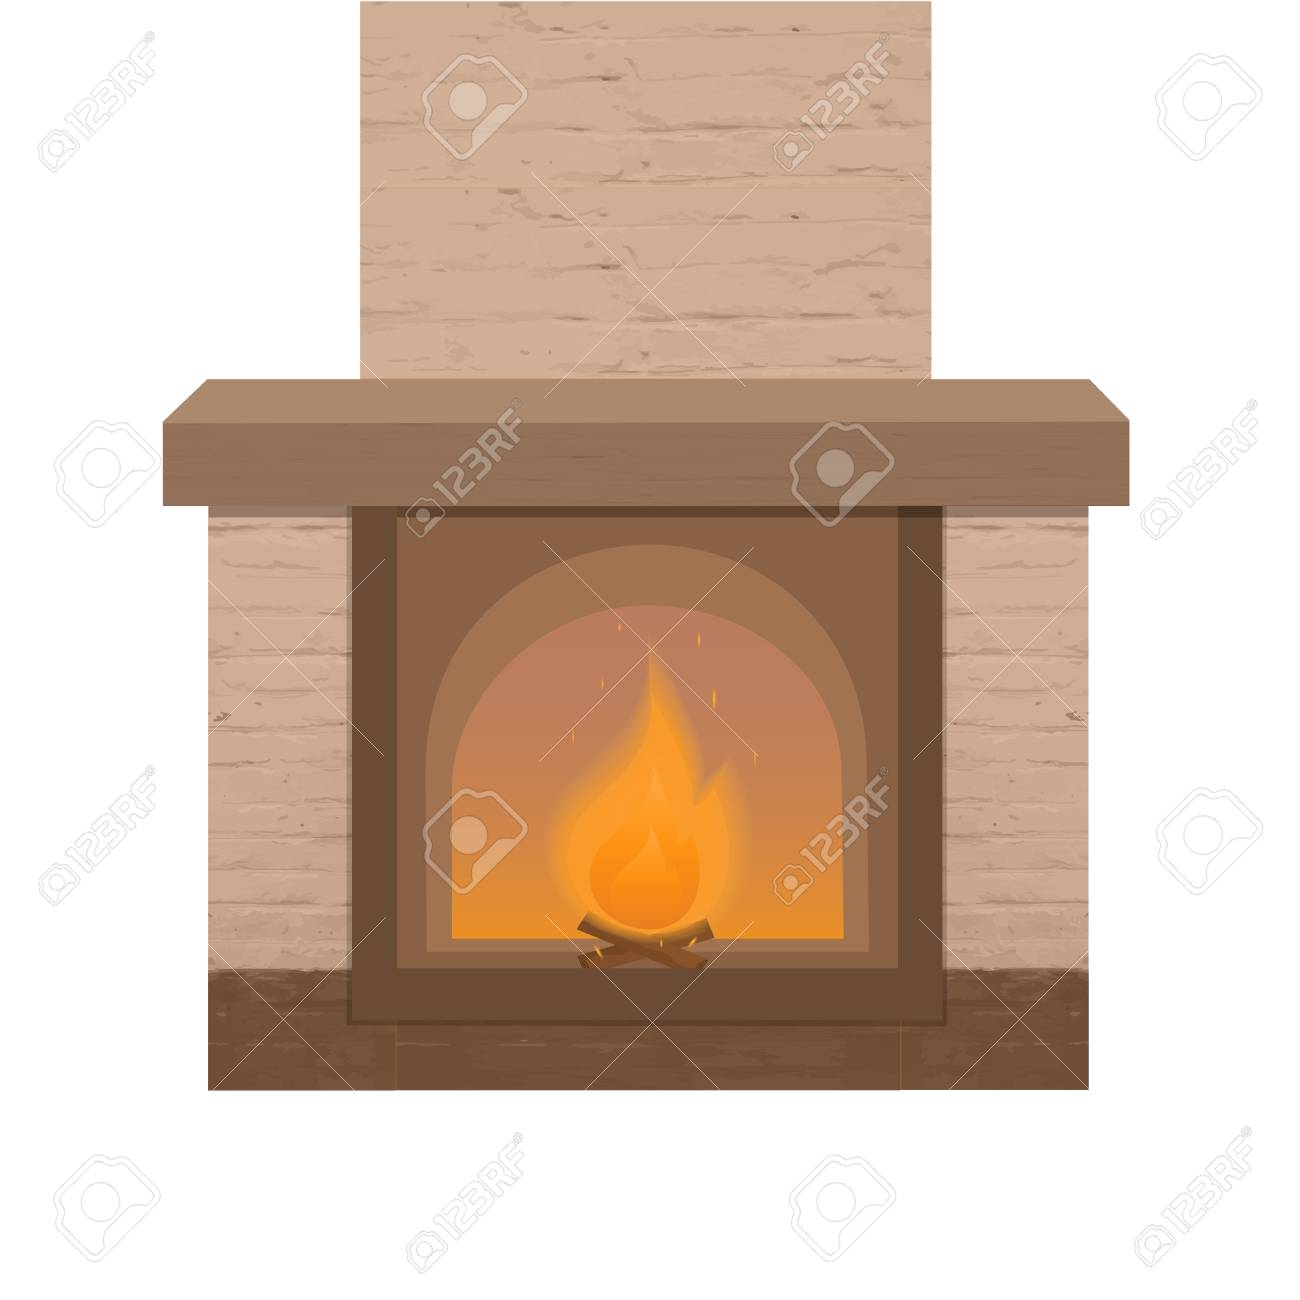 Brick Fireplace With A Burning Fire Royalty Free Cliparts Vectors